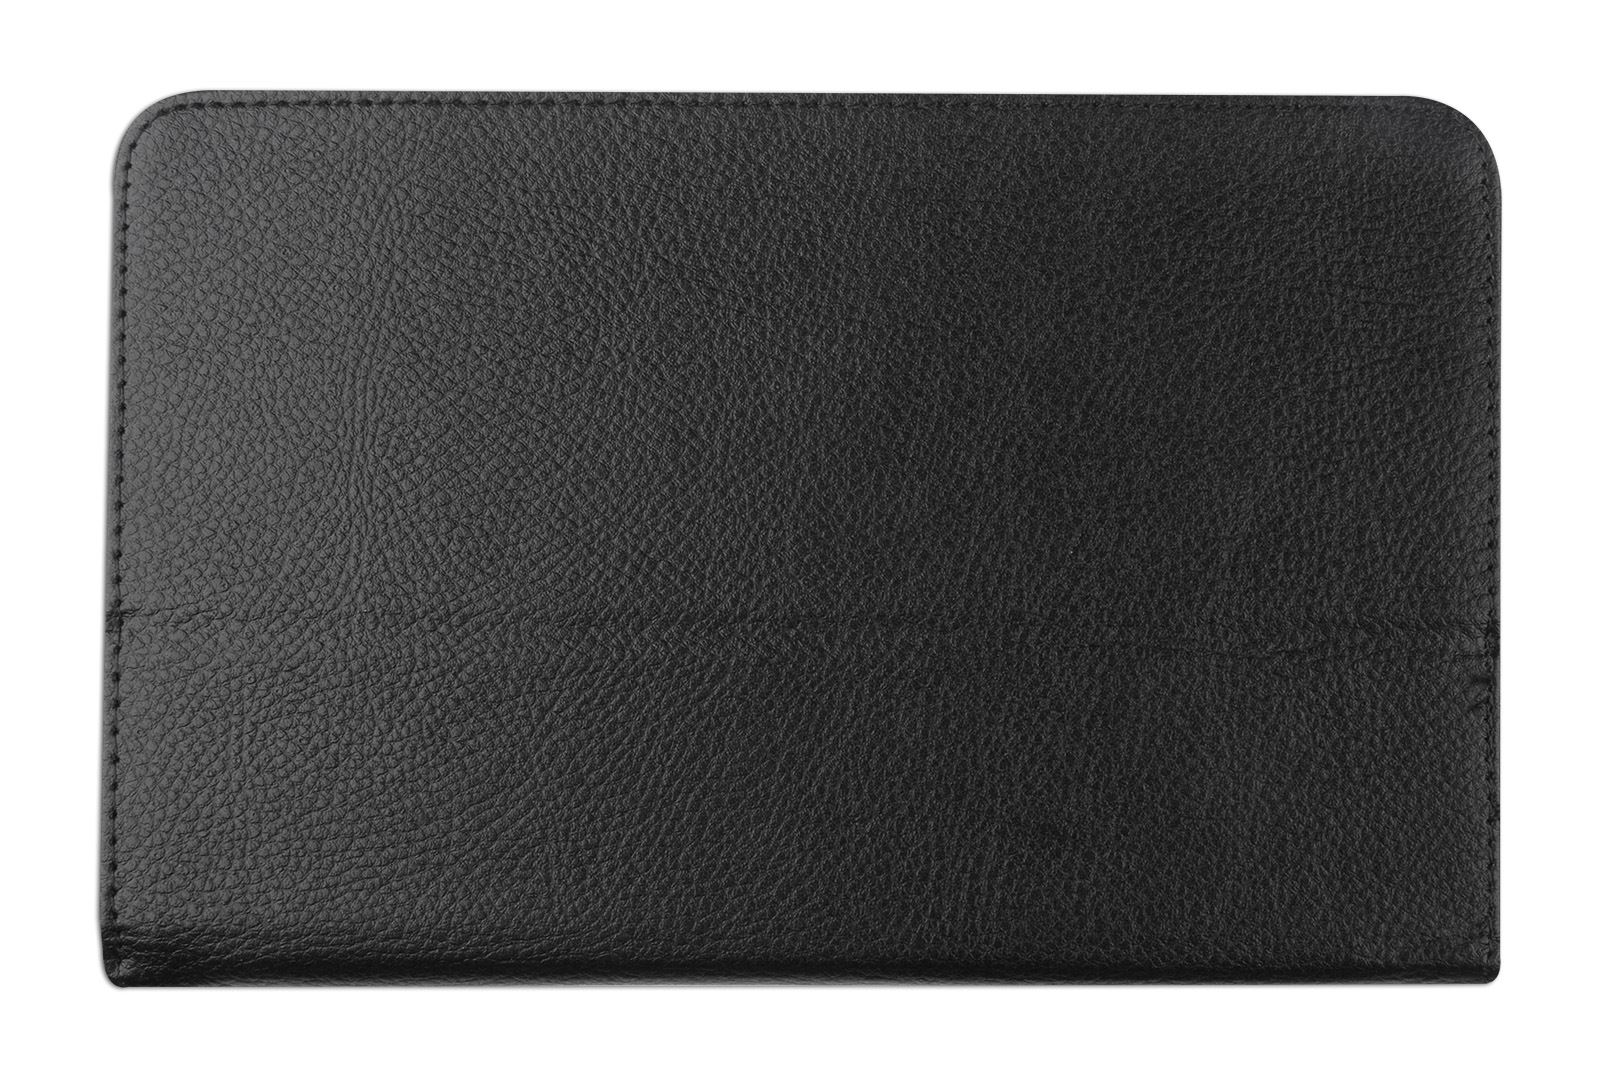 Hellfire-Trading-Magnetic-PU-Leather-Case-Cover-for-Lenovo-IdeaTab-A8-50-A5500 Indexbild 12